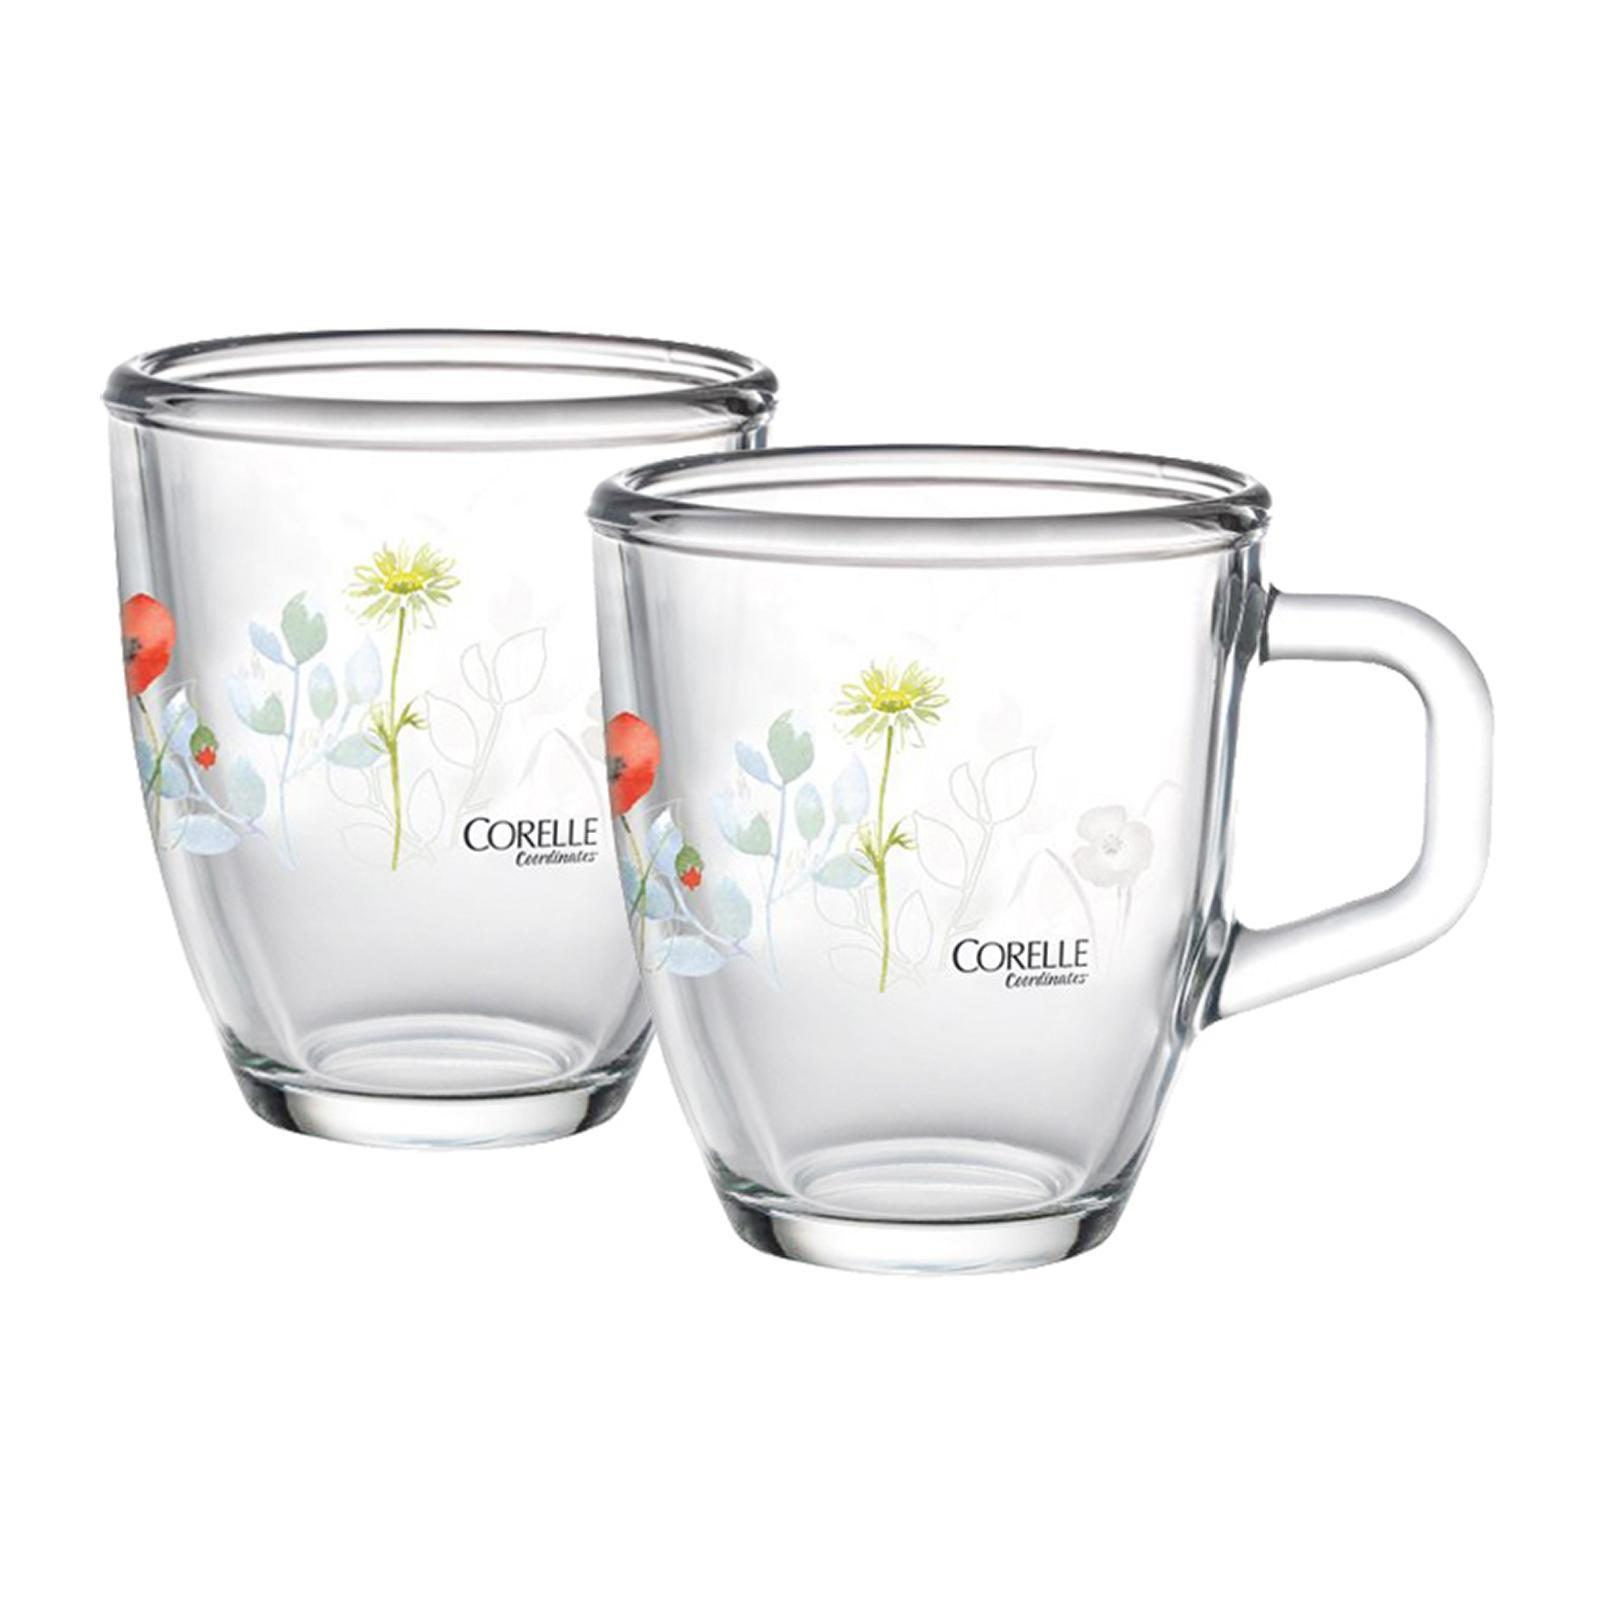 Corelle Coordinates 2 PCS 375 ML Mug Set (Design : Daisy Field)